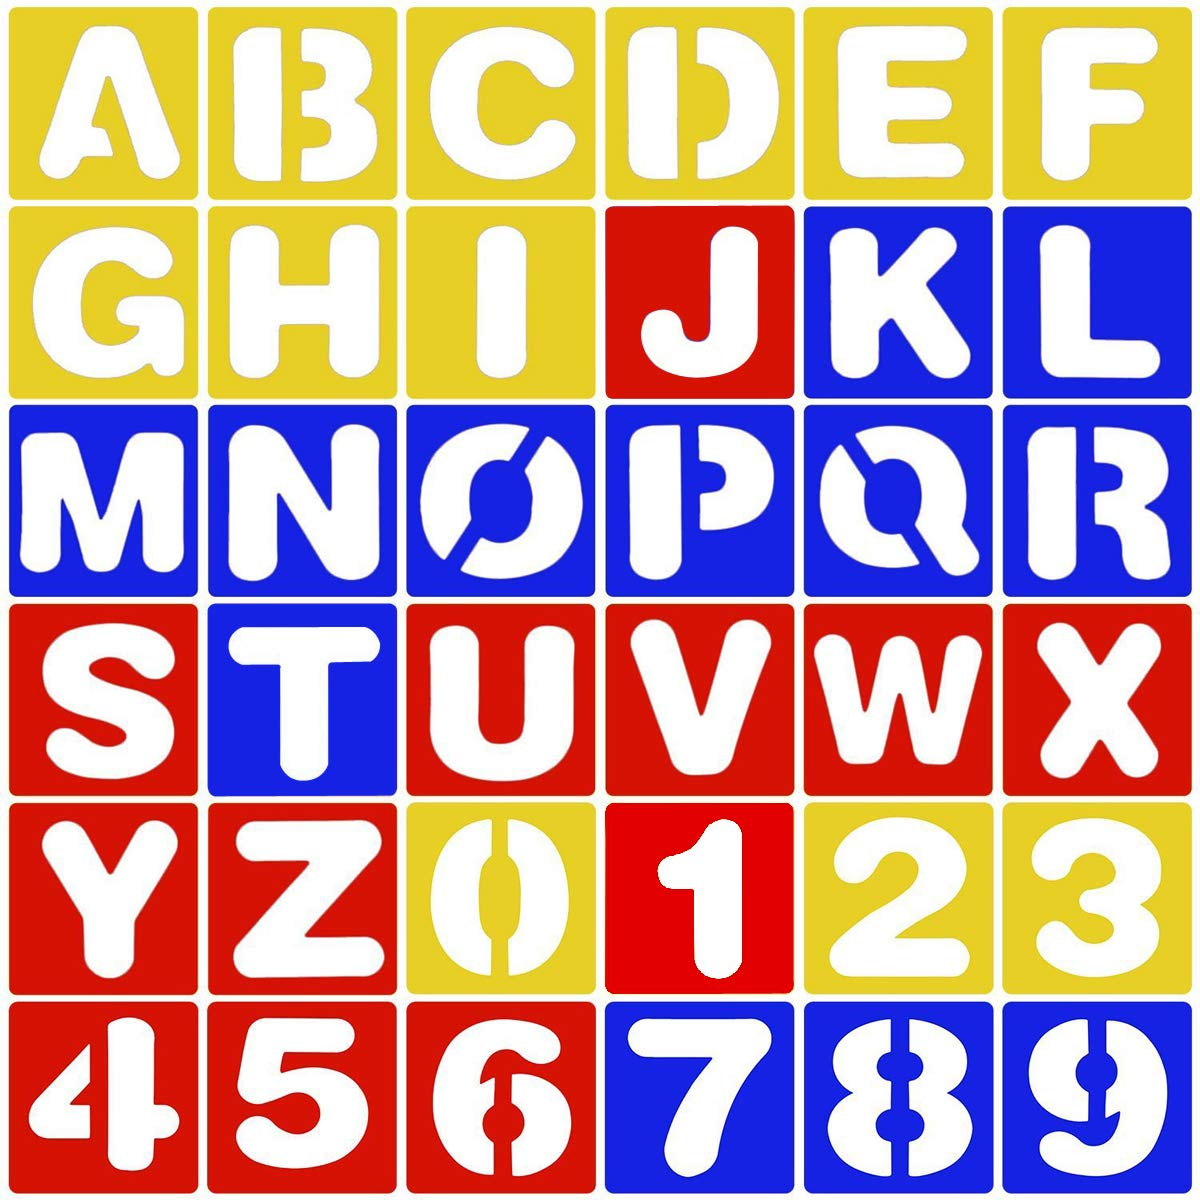 CKANDAY 36 Pieces Alphabet and Number Stencils Set, 3 Colors Plastic Letter Stencils for Painting Learning DIY Craft Decoration Journaling Scrapbooking Card and Art Projects, 4 inches